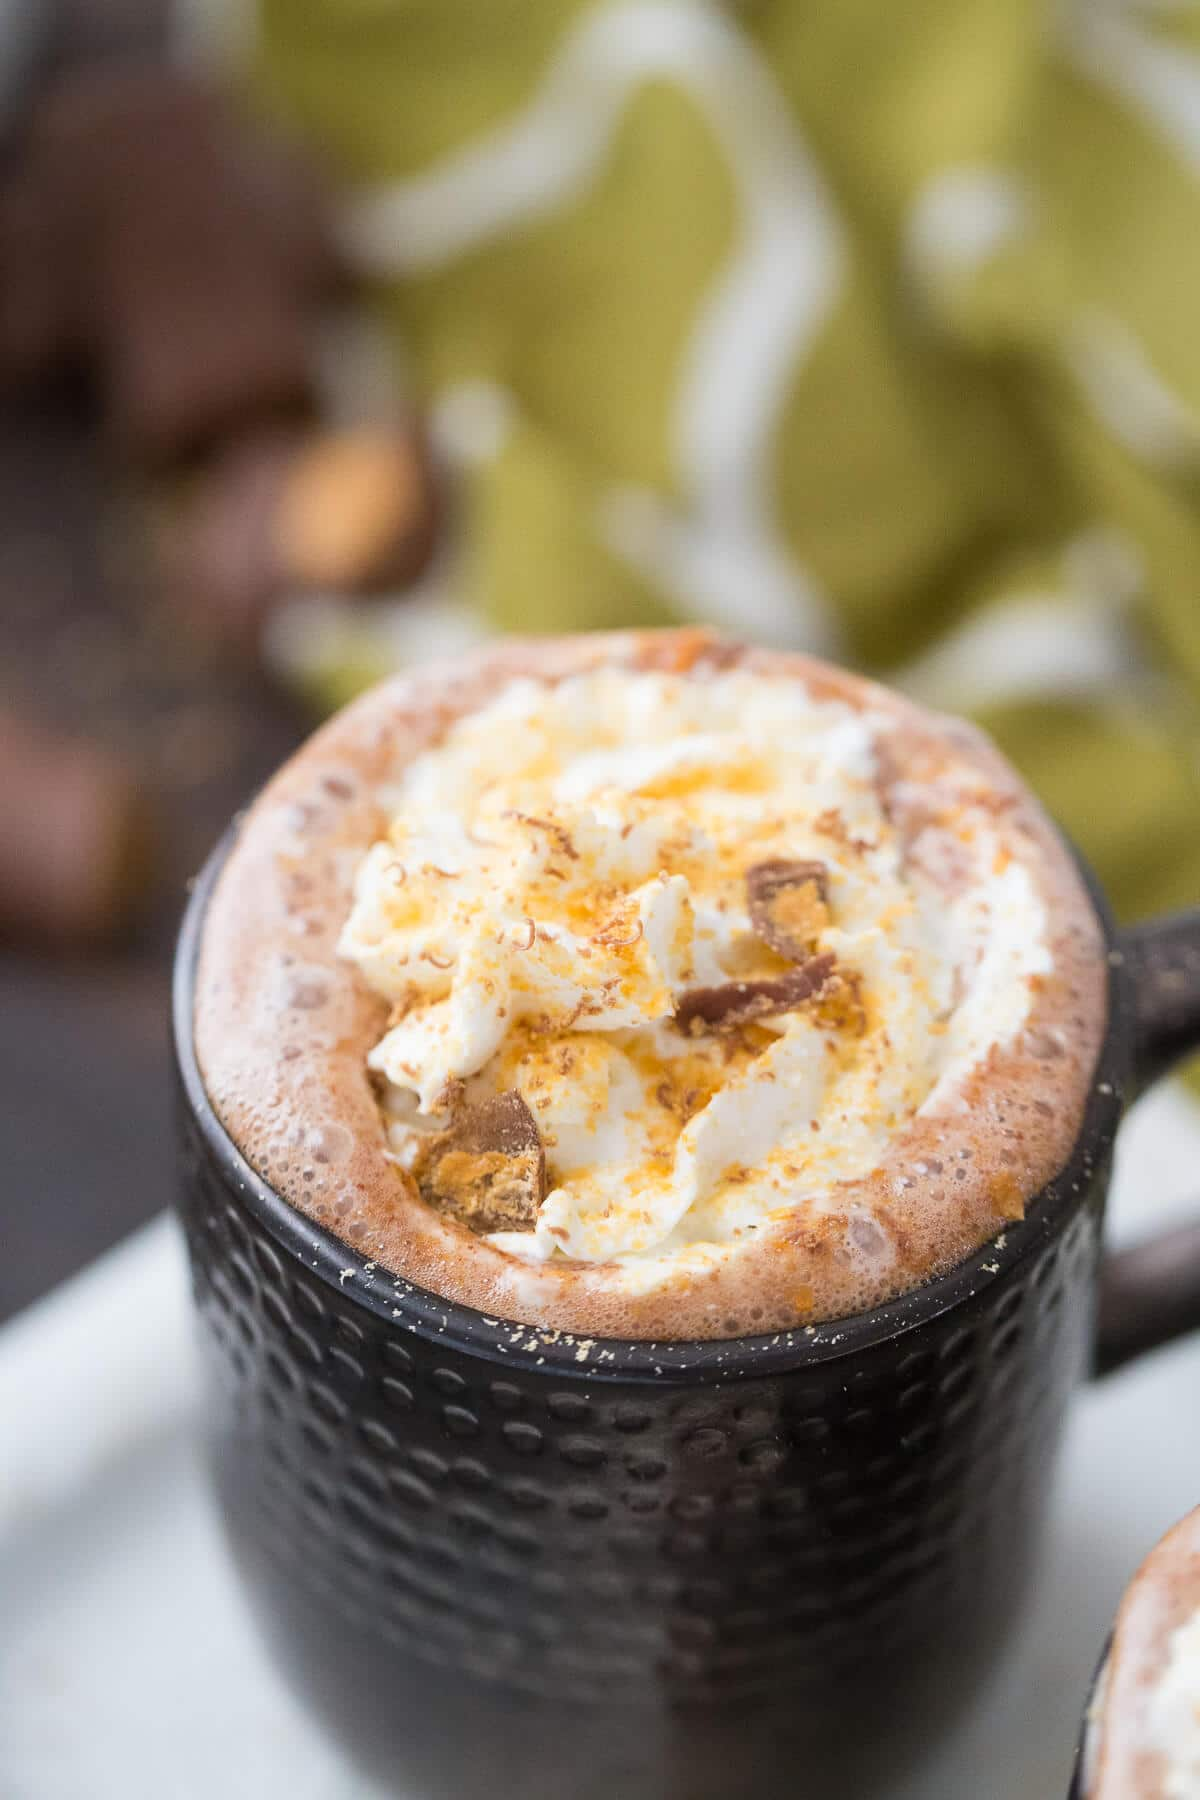 This a heck of boozy hot cocoa recipe! This hot chocolate tastes just like Butterfinger candy!